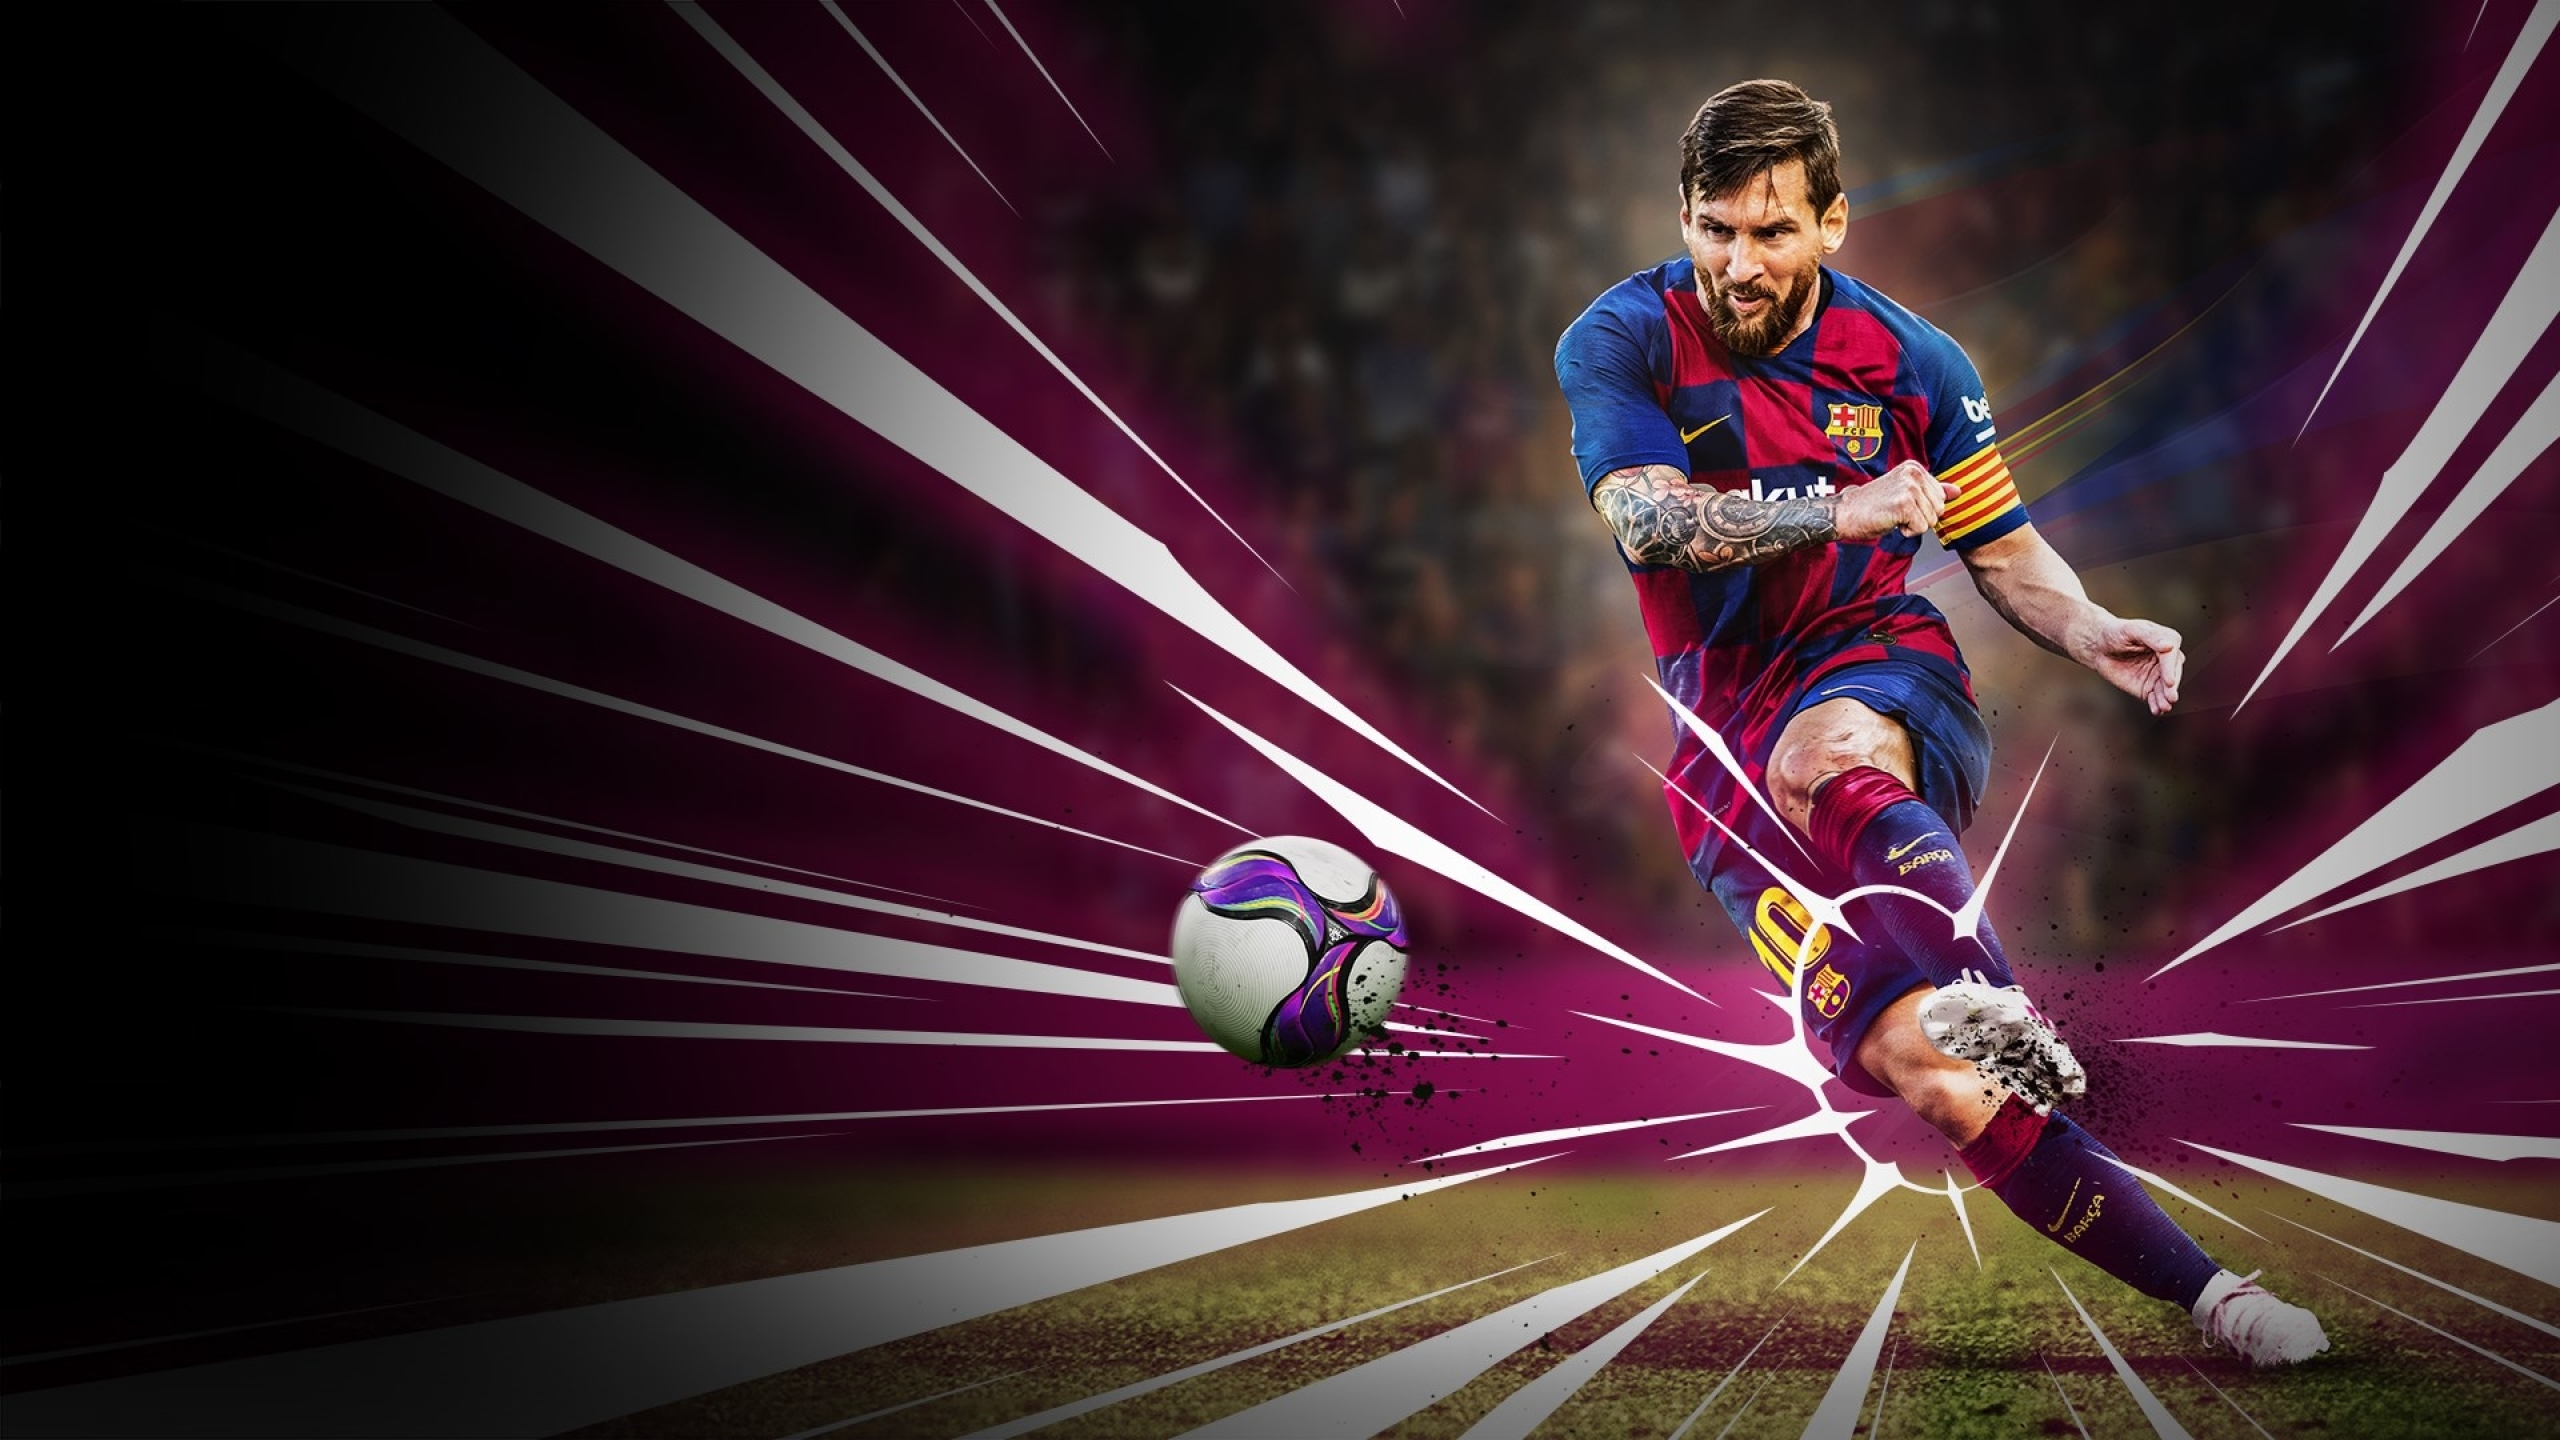 2560x1440 Efootball Pes 2020 1440p Resolution Wallpaper Hd Games 4k Wallpapers Images Photos And Background